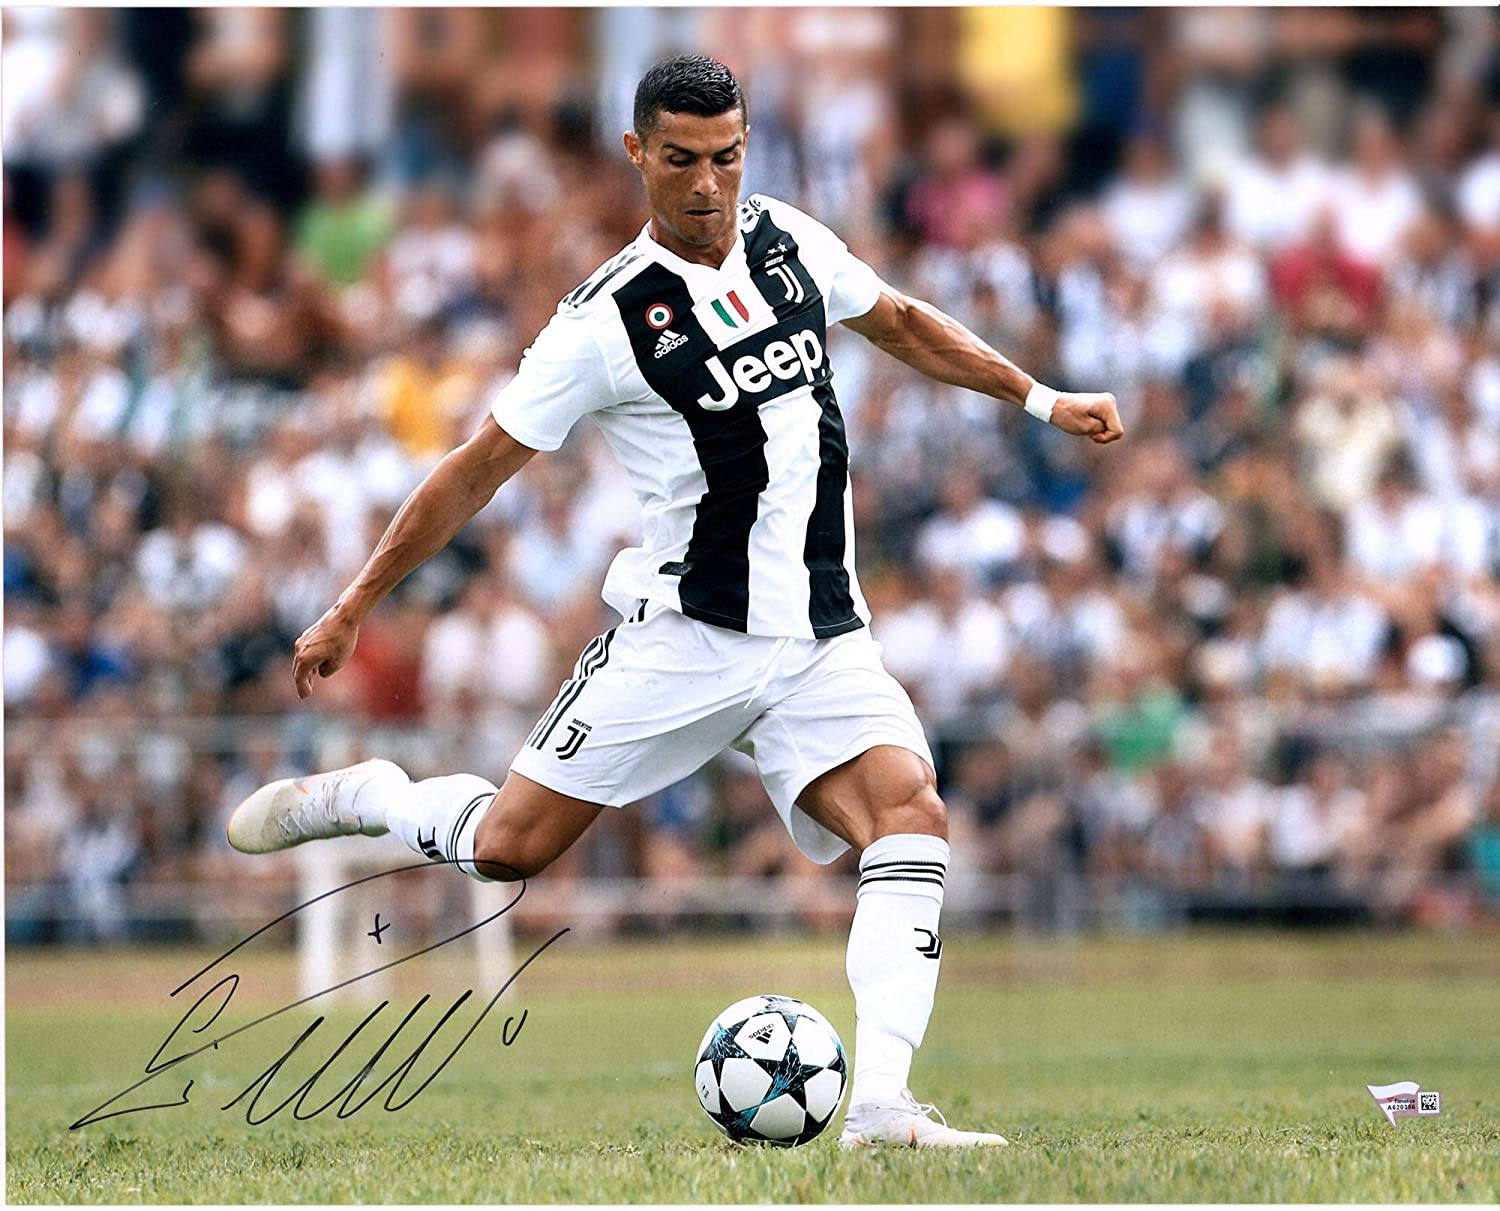 Cristiano Ronaldo Juventus F C Autographed 16 X 20 Kicking Photograph Autographed Soccer Photos At Amazon S Sports Collectibles Store